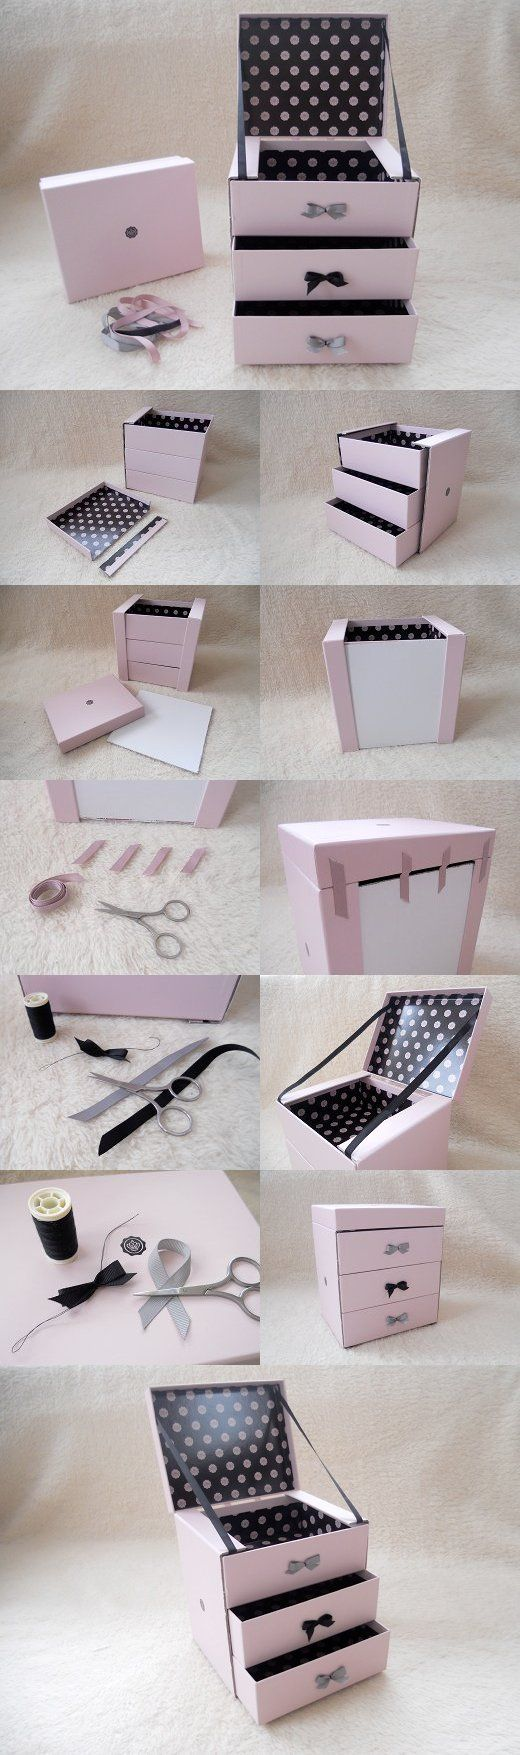 40 Smart Storage Ideas That Will Enlarge Your Space_homestheitcs (14)